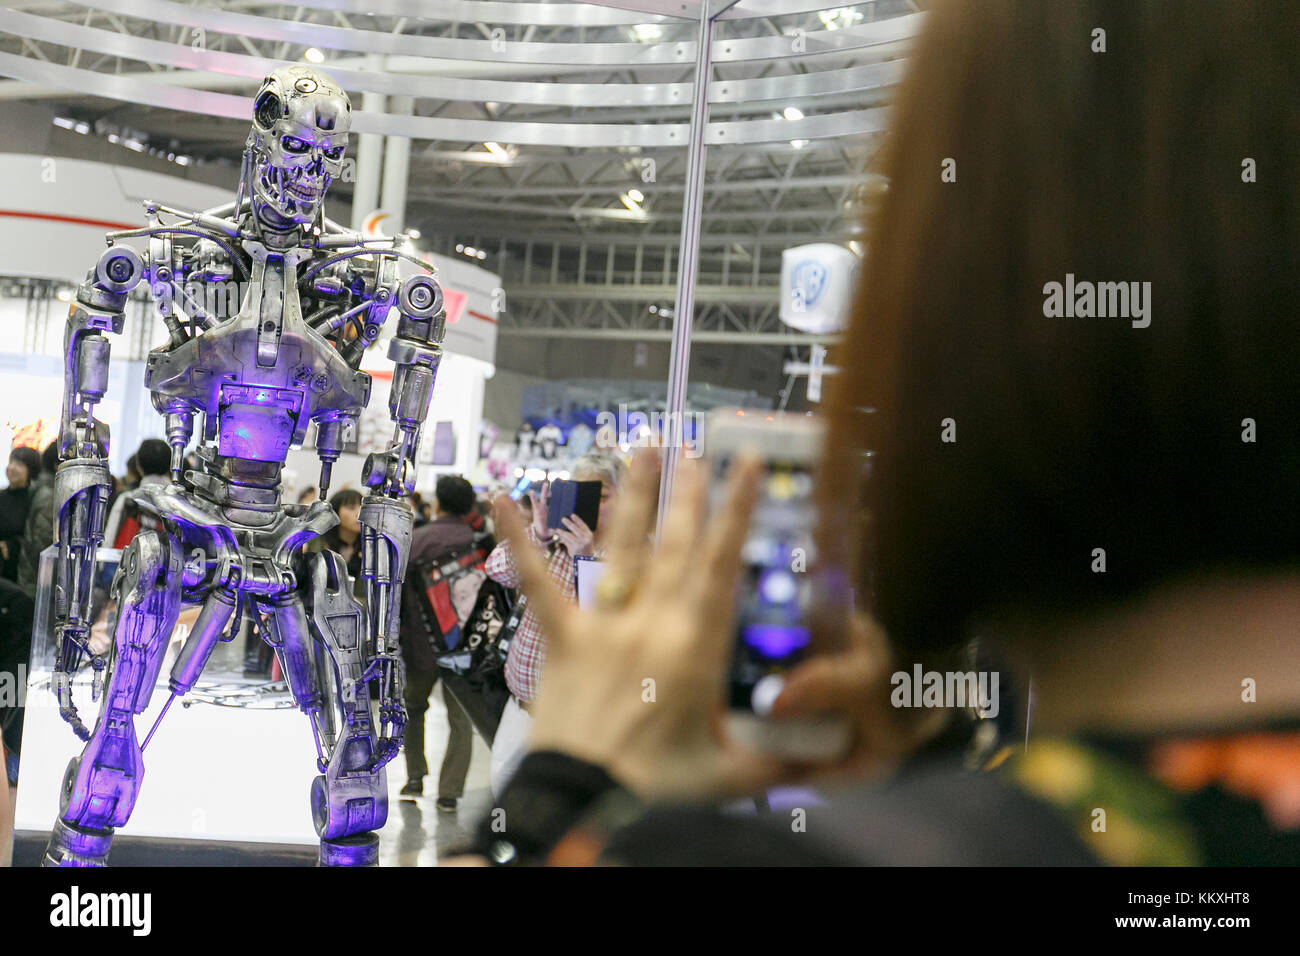 A visitor takes pictures of a life-size statue of Terminator Endoskeleton T-800 during the Tokyo Comic Con 2017 - Stock Image